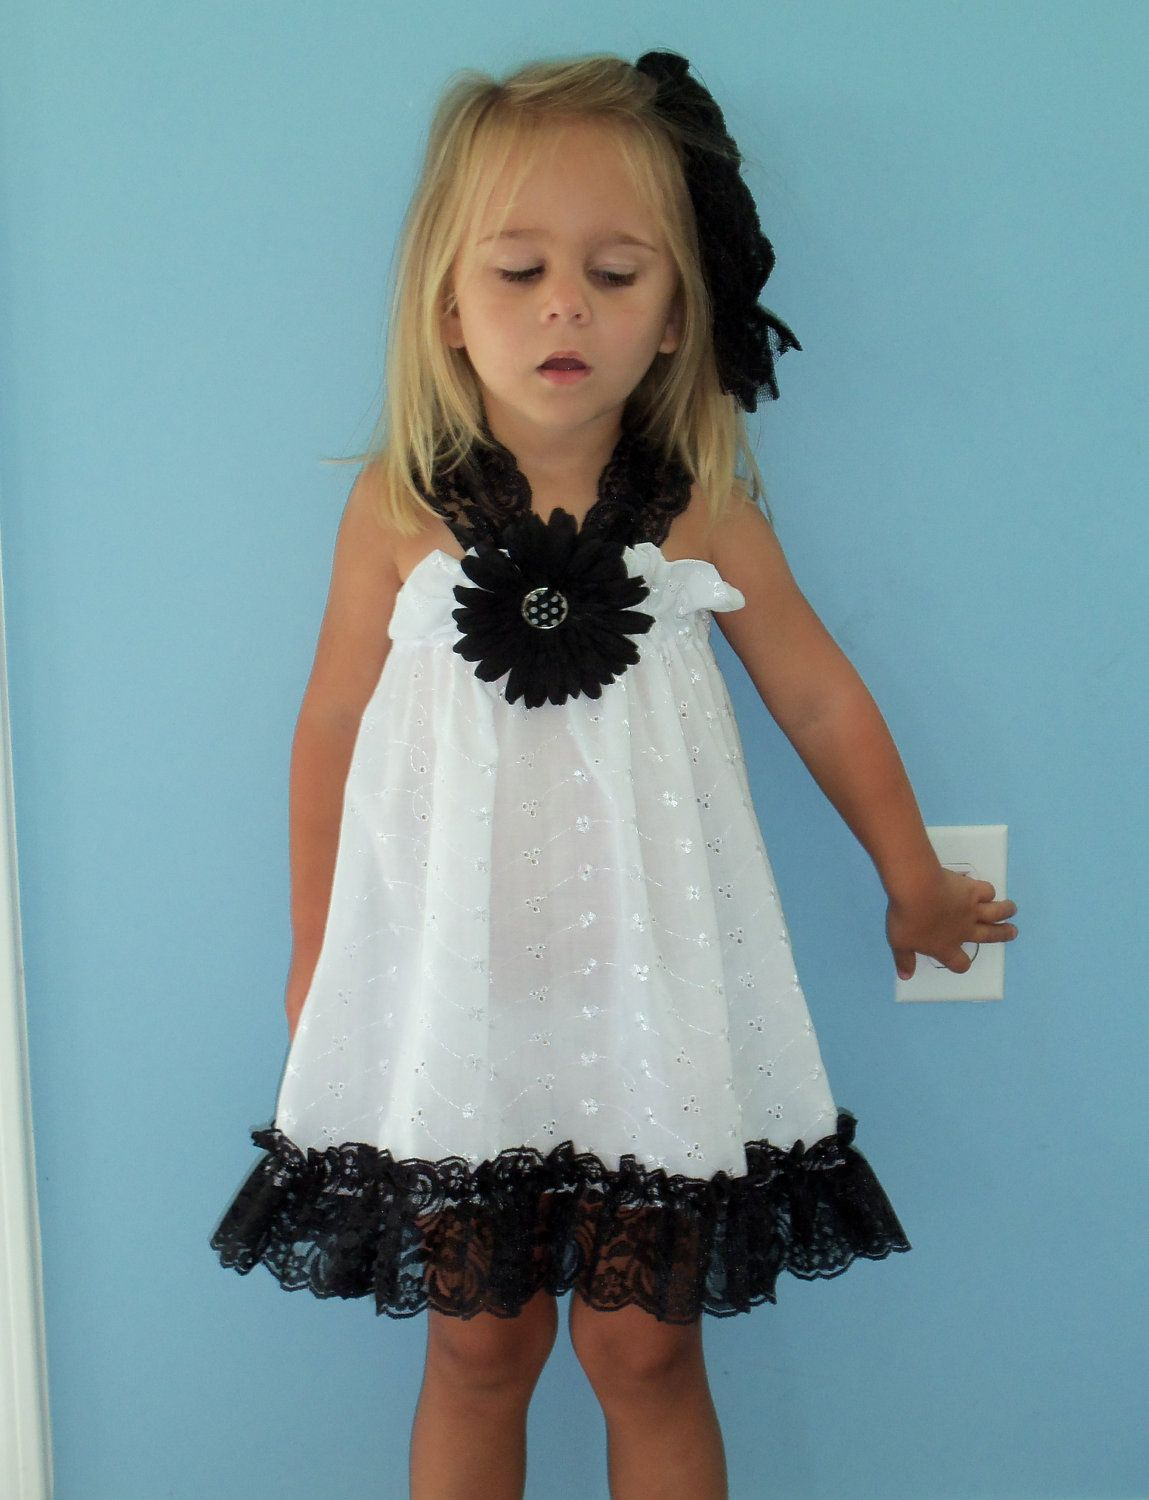 White Eyelet Dress With Black Lace Straps And Ruffle 28 00 Via Etsy Dresses White Eyelet Dress Eyelet Dress [ 1500 x 1149 Pixel ]